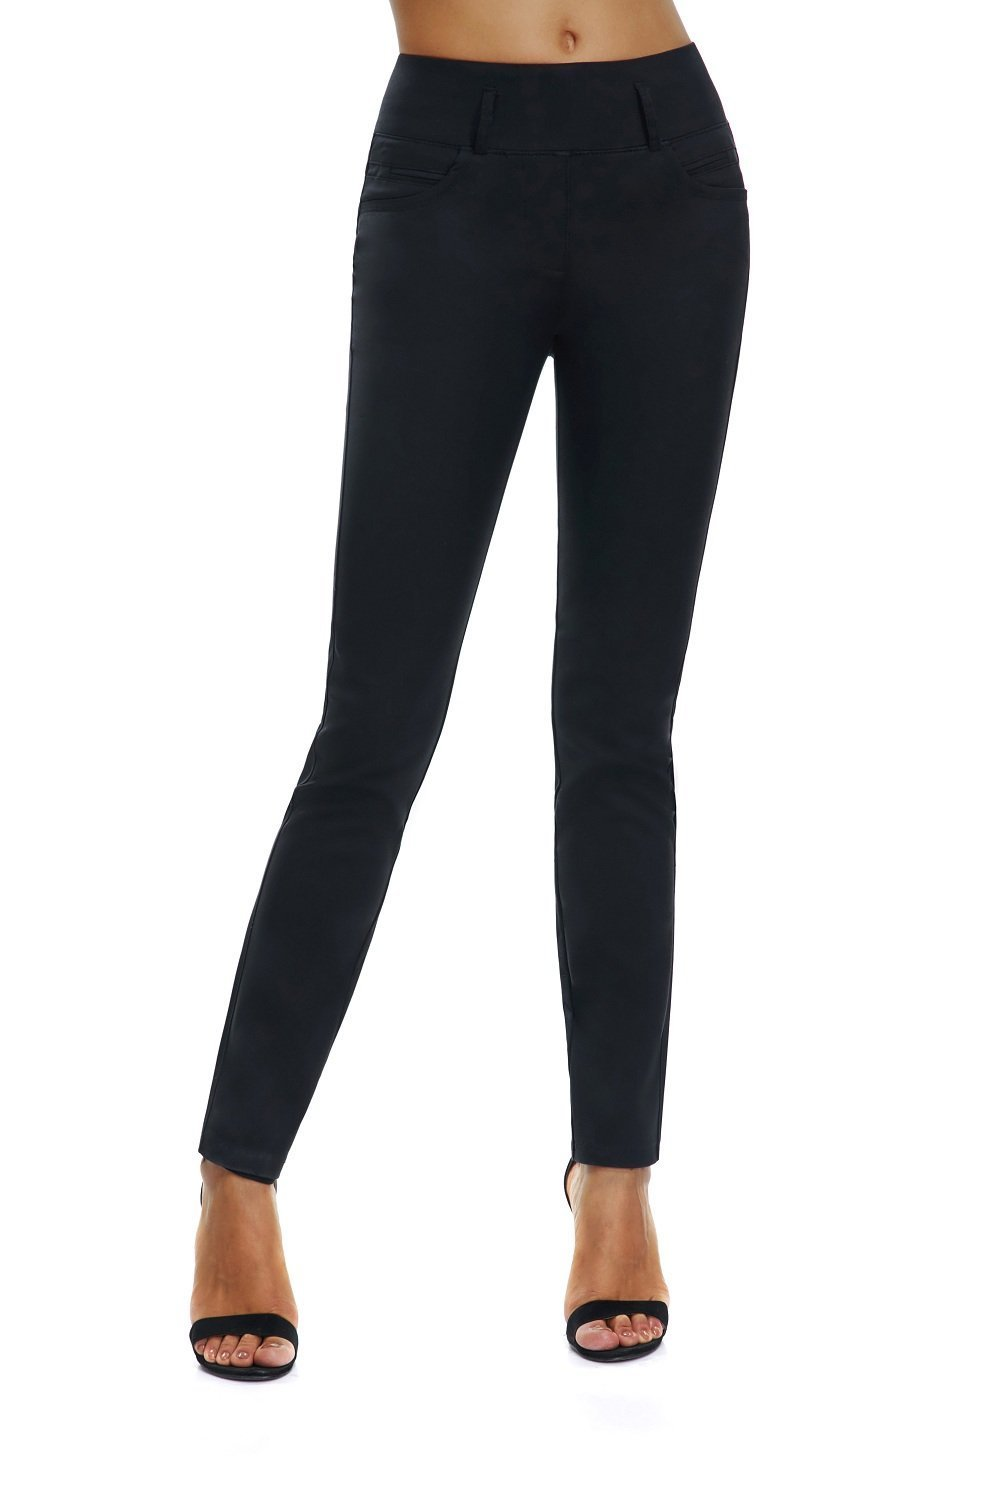 VIKUCI Women's Straight Fit Pull-on Trouser Pants for All Occaisions (L, Black)